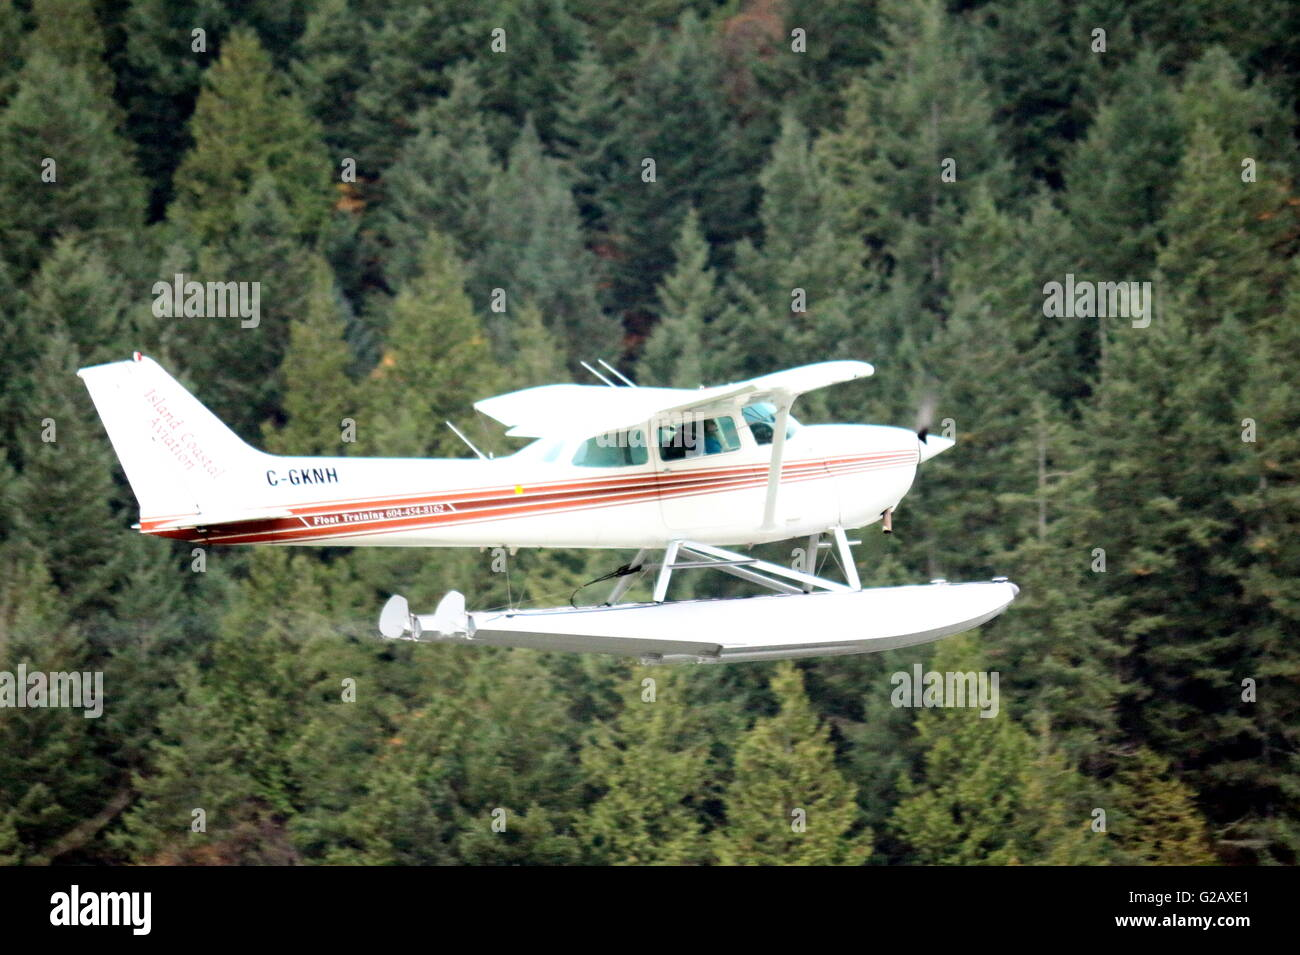 Flying Practice 5 - Cessna Aircraft - Stock Image